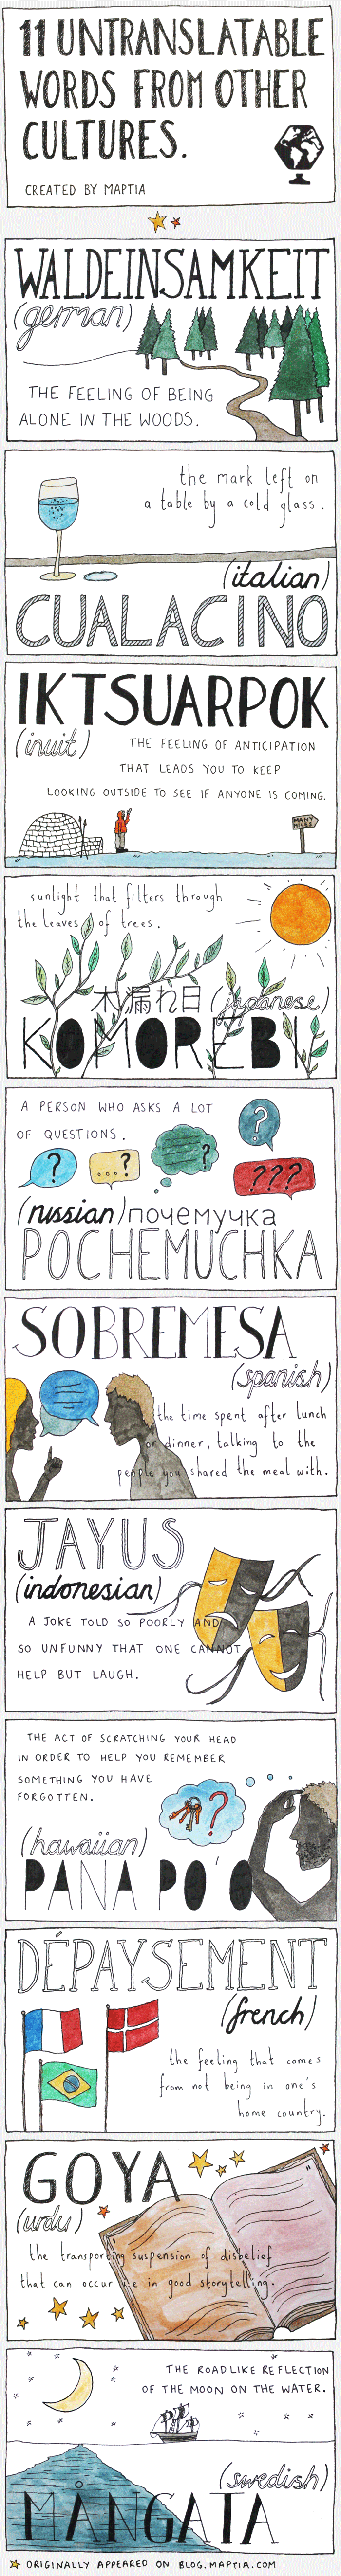 11 Untranslatable Words From Other Cultures